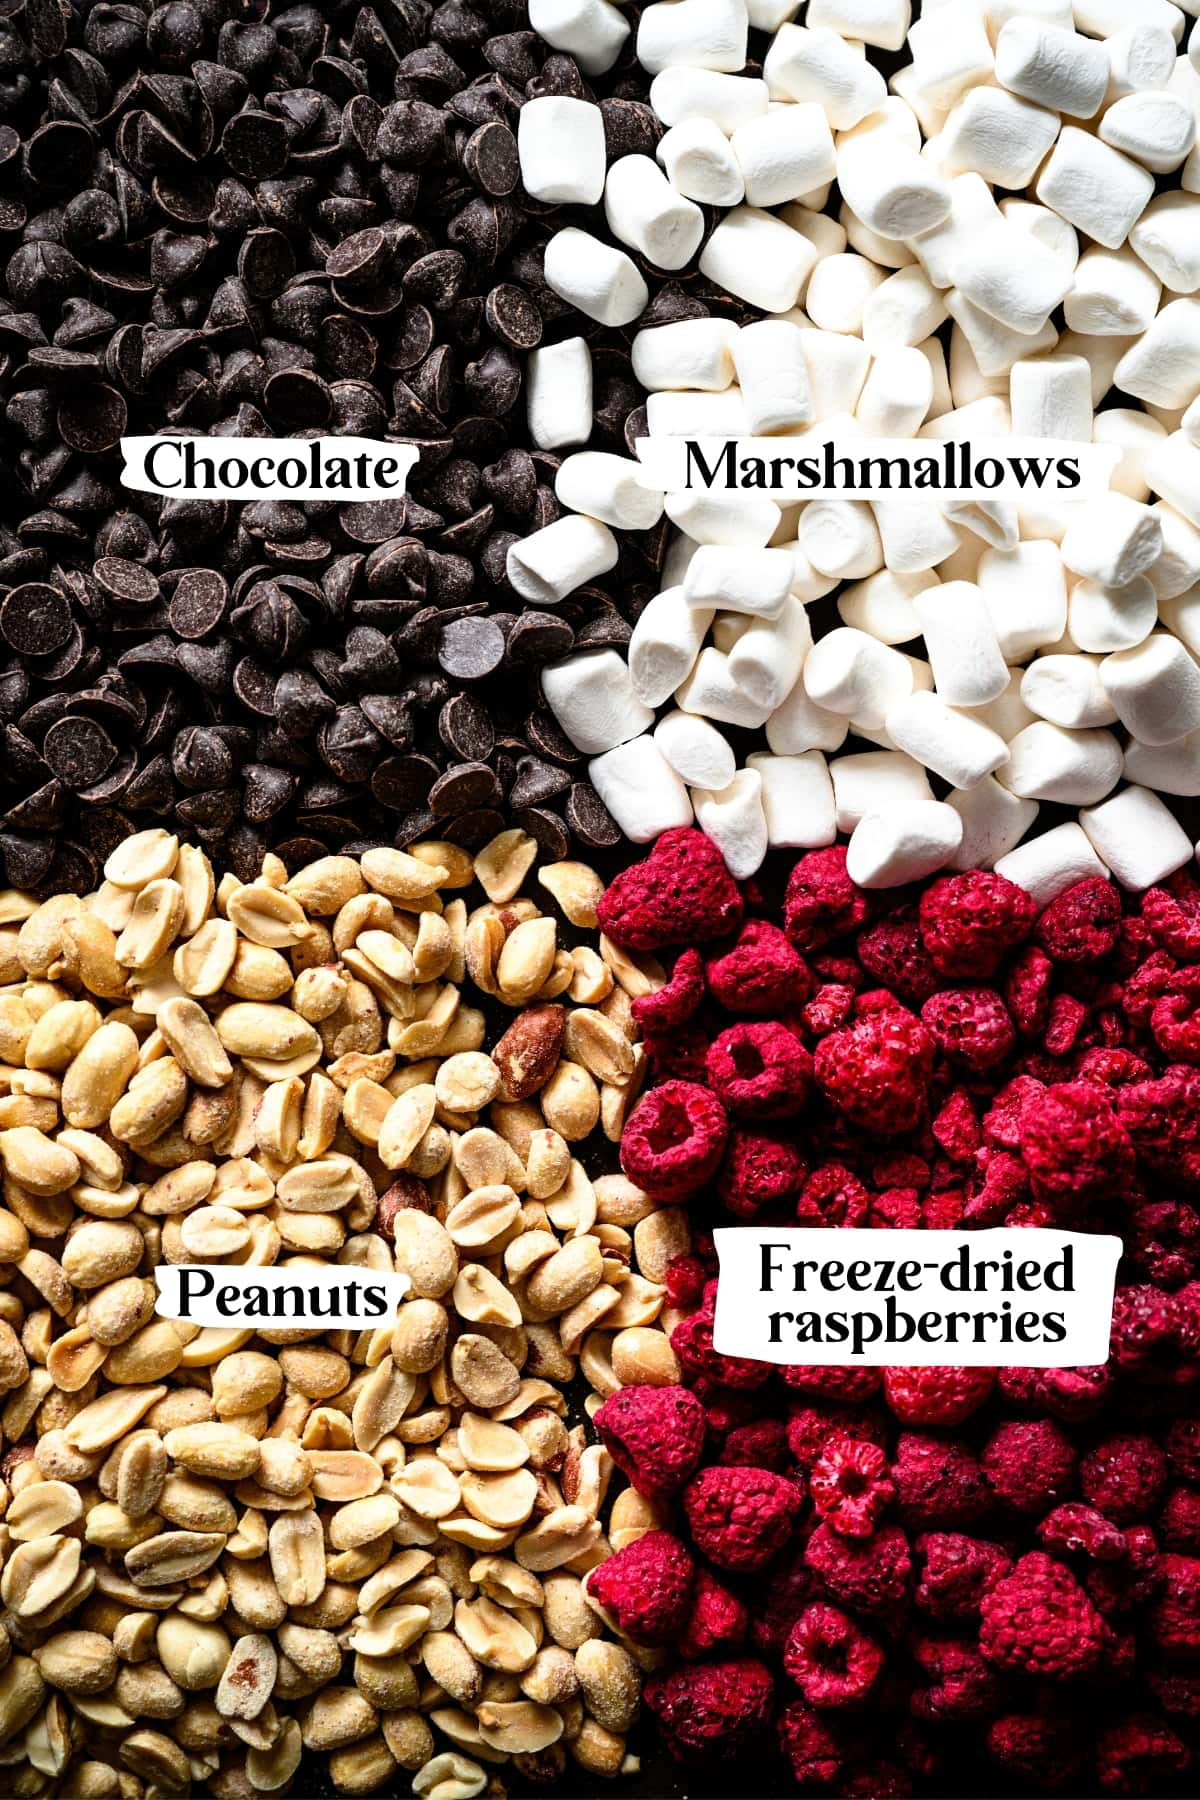 overhead view of dark chocolate chips, mini marshmallows, peanuts and freeze dried raspberries.